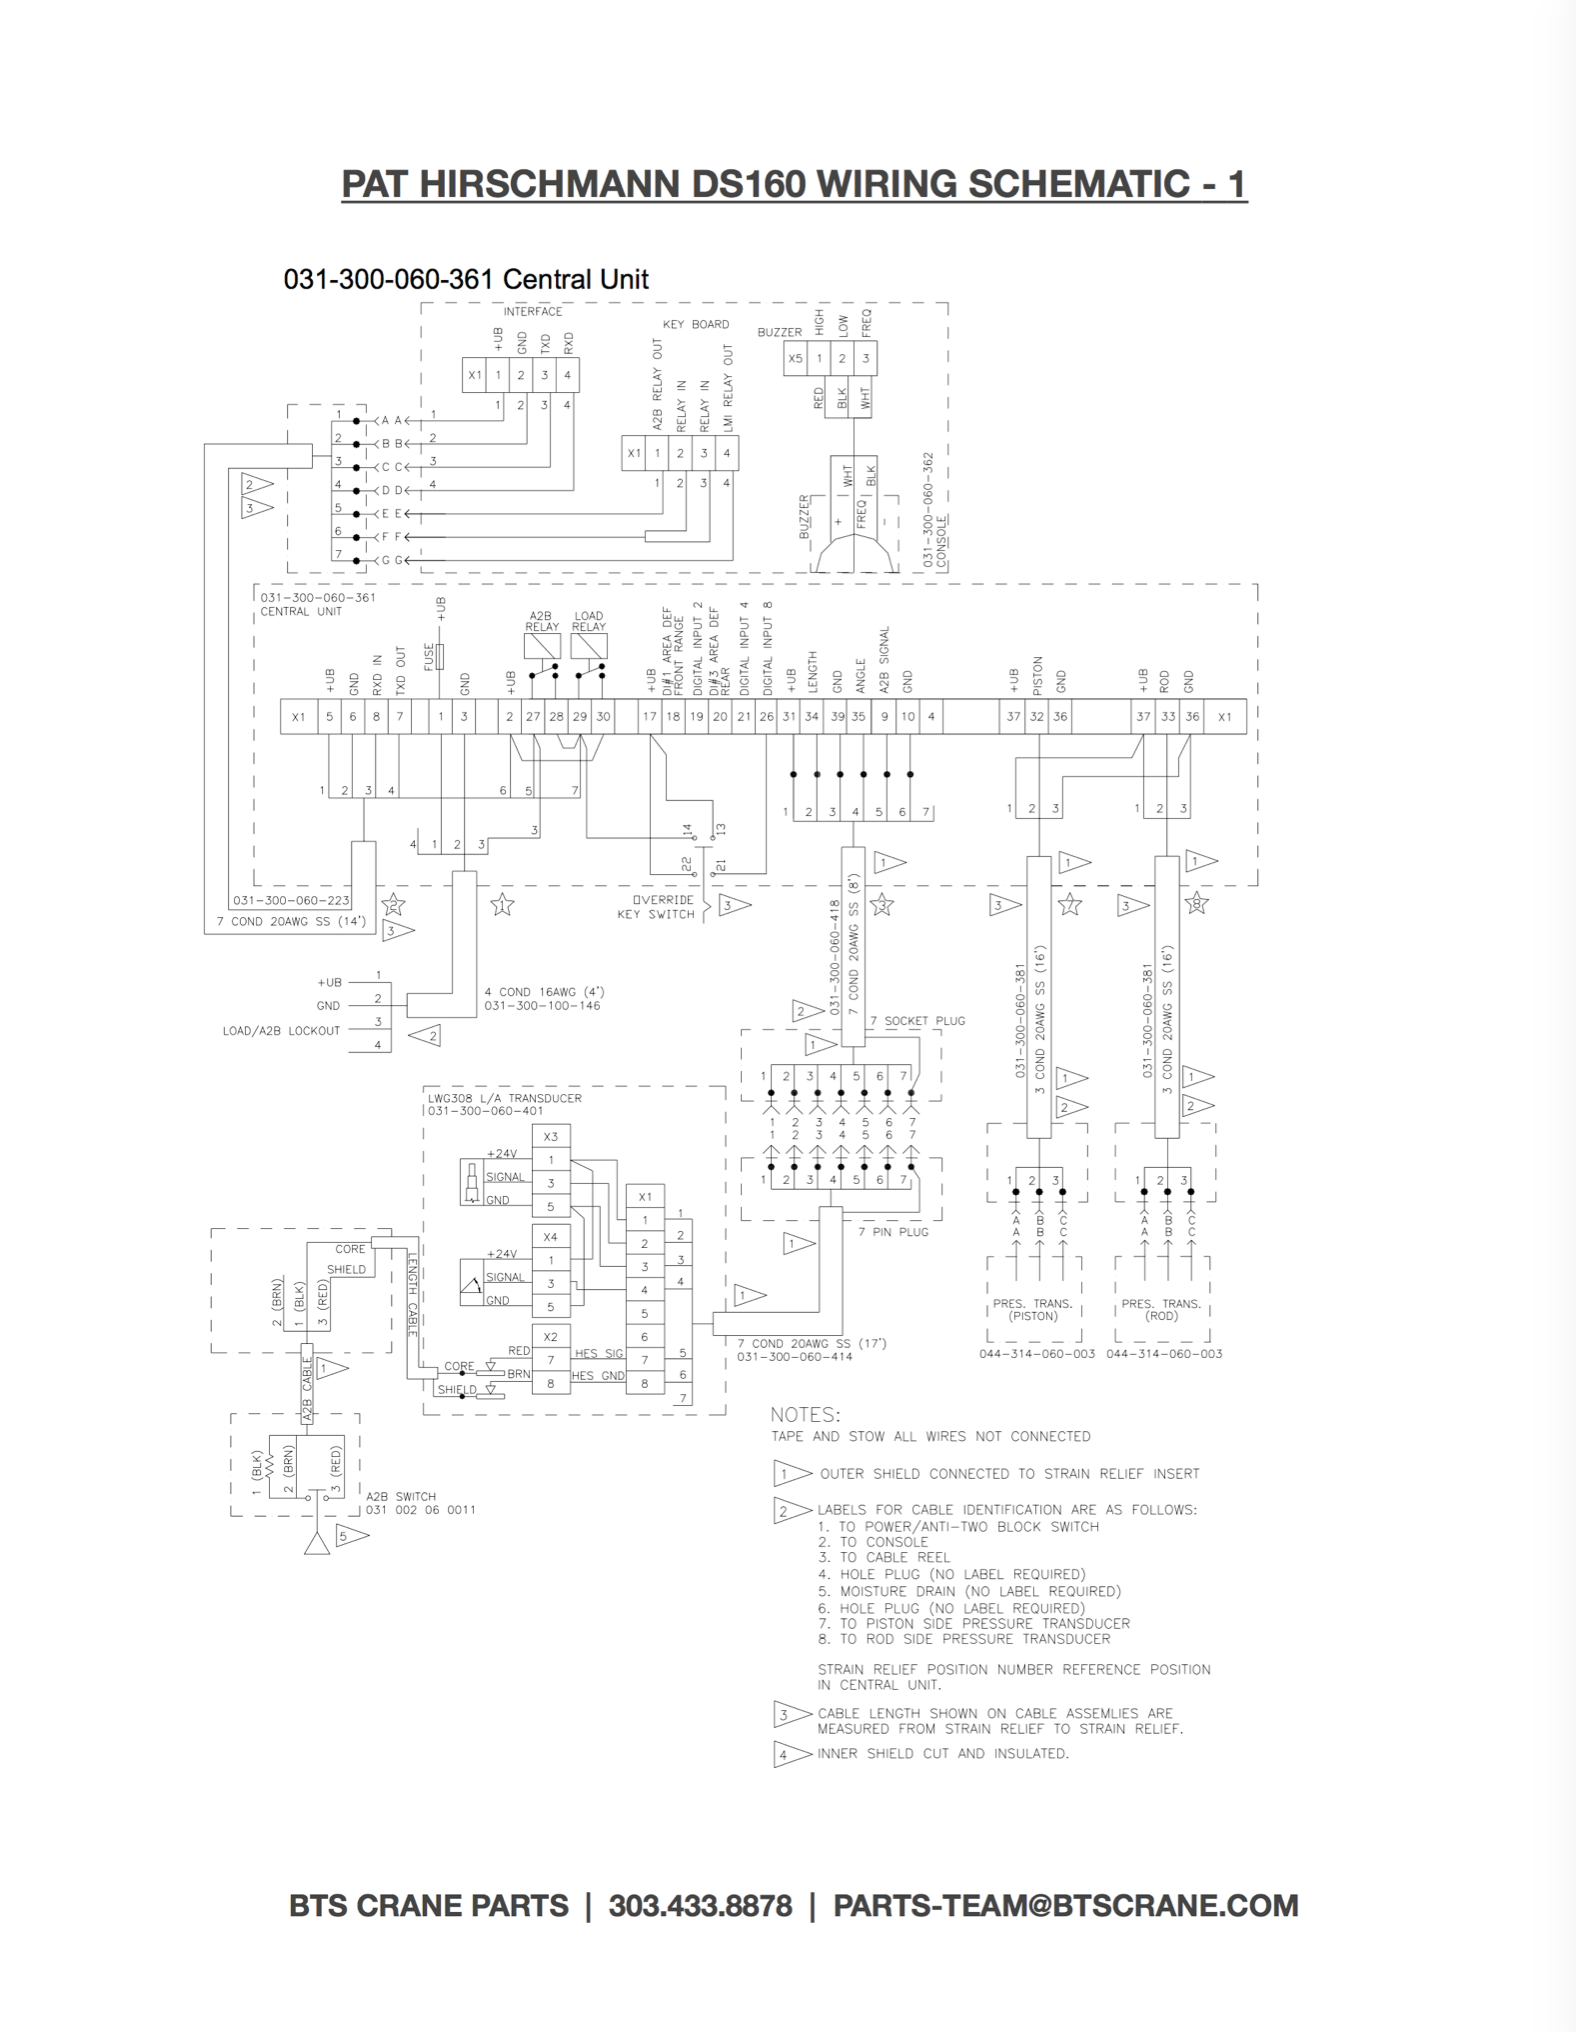 Surprising pat ds 350 wiring diagram gallery best image schematics pat hirschmann ds160 wiring schematic click here swarovskicordoba Choice Image